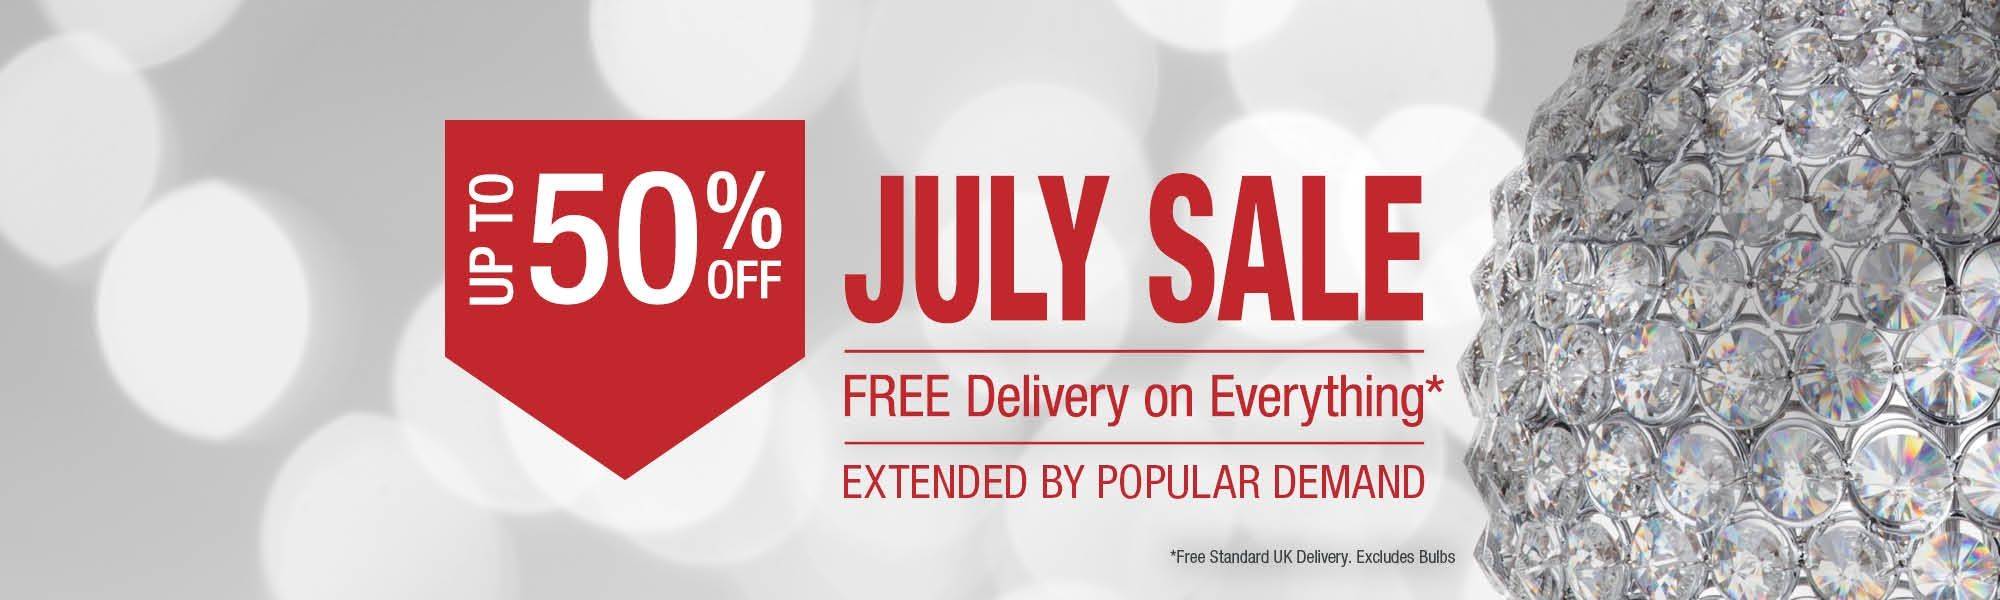 July Sale - Up To 50% Off